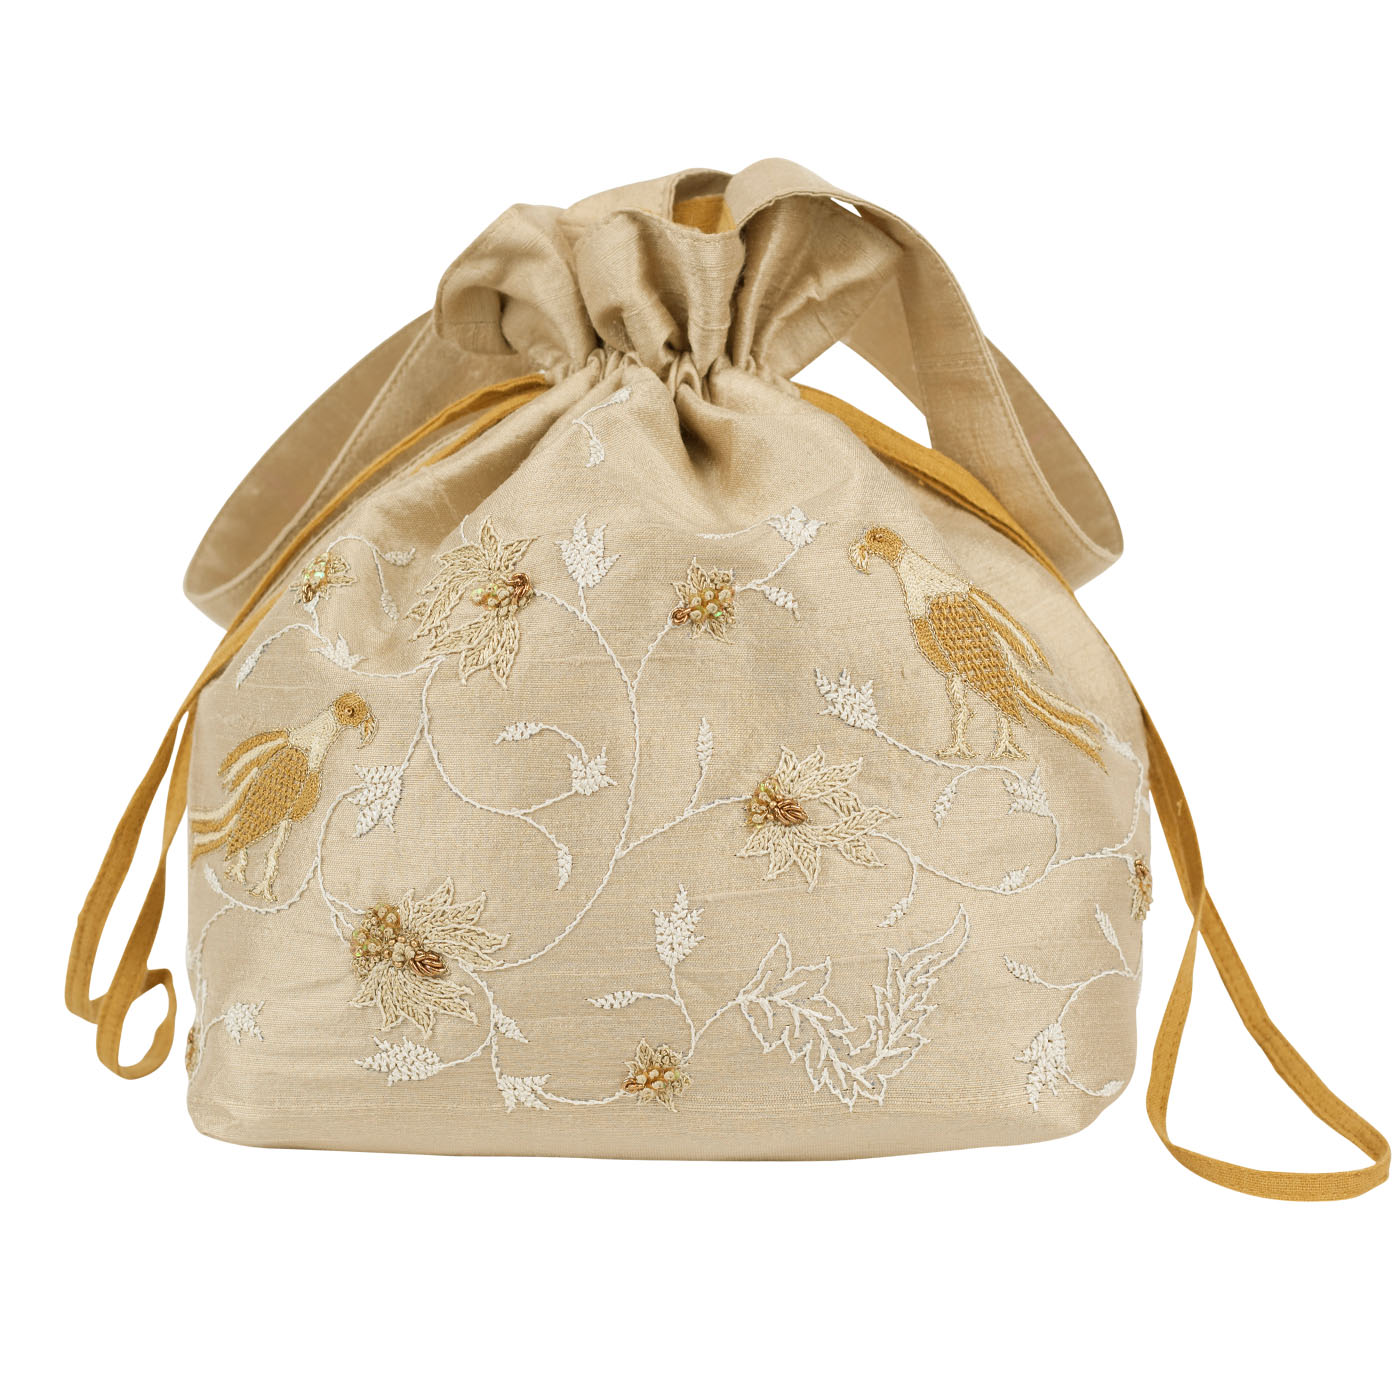 MINC Couture Embroidered Silk Potli Bag in Dune Beige